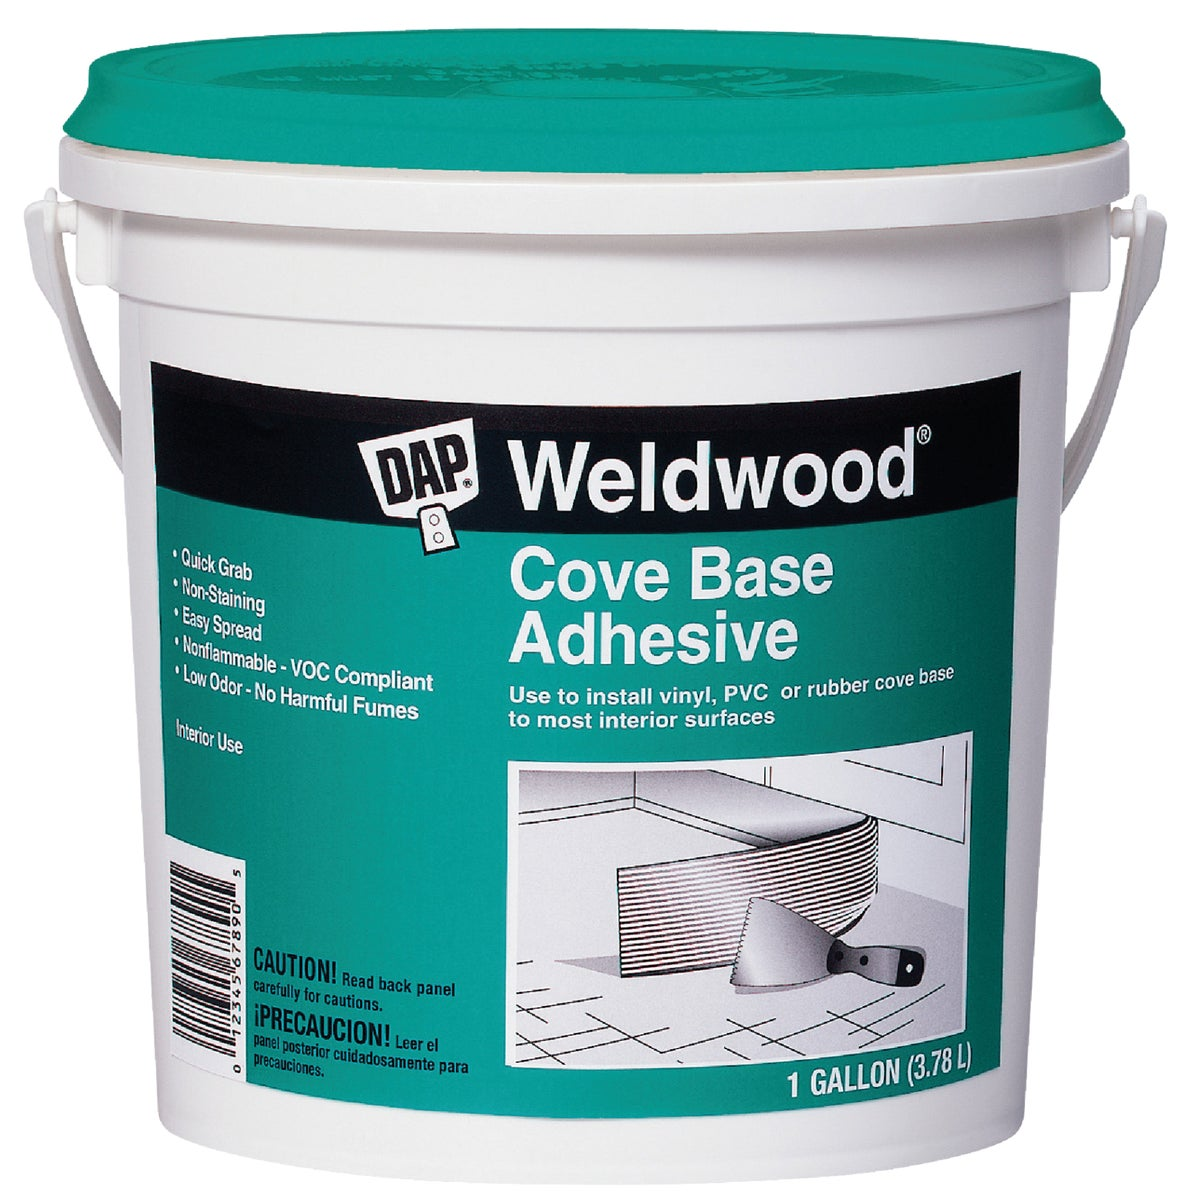 GAL COVE BASE ADHESIVE - 25054 by Dap Inc